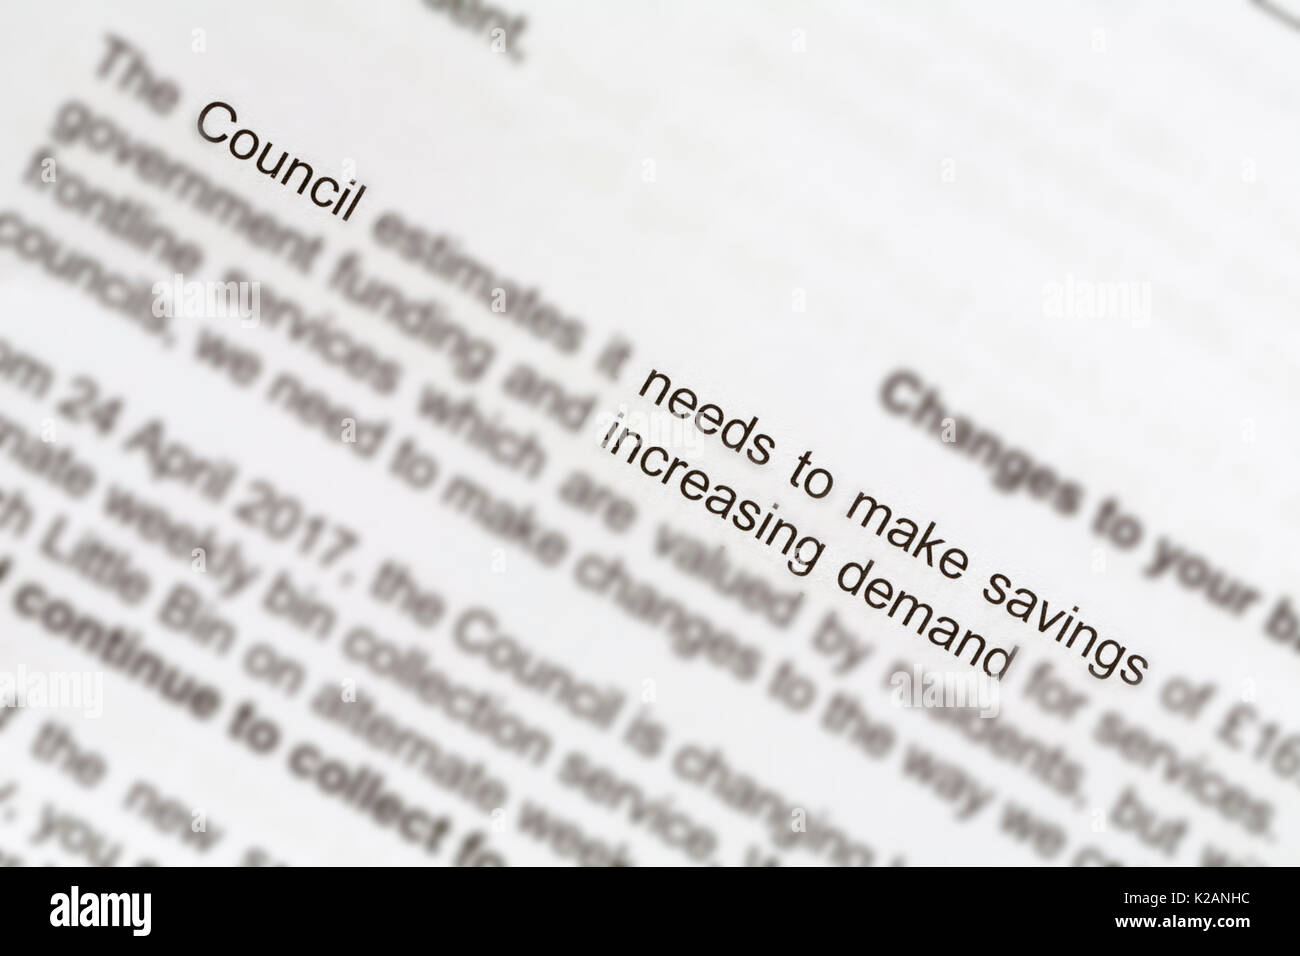 Letter from council advising of changes to bin collections to fortnightly bin collections because of cuts in government funding & increase in demand - Stock Image